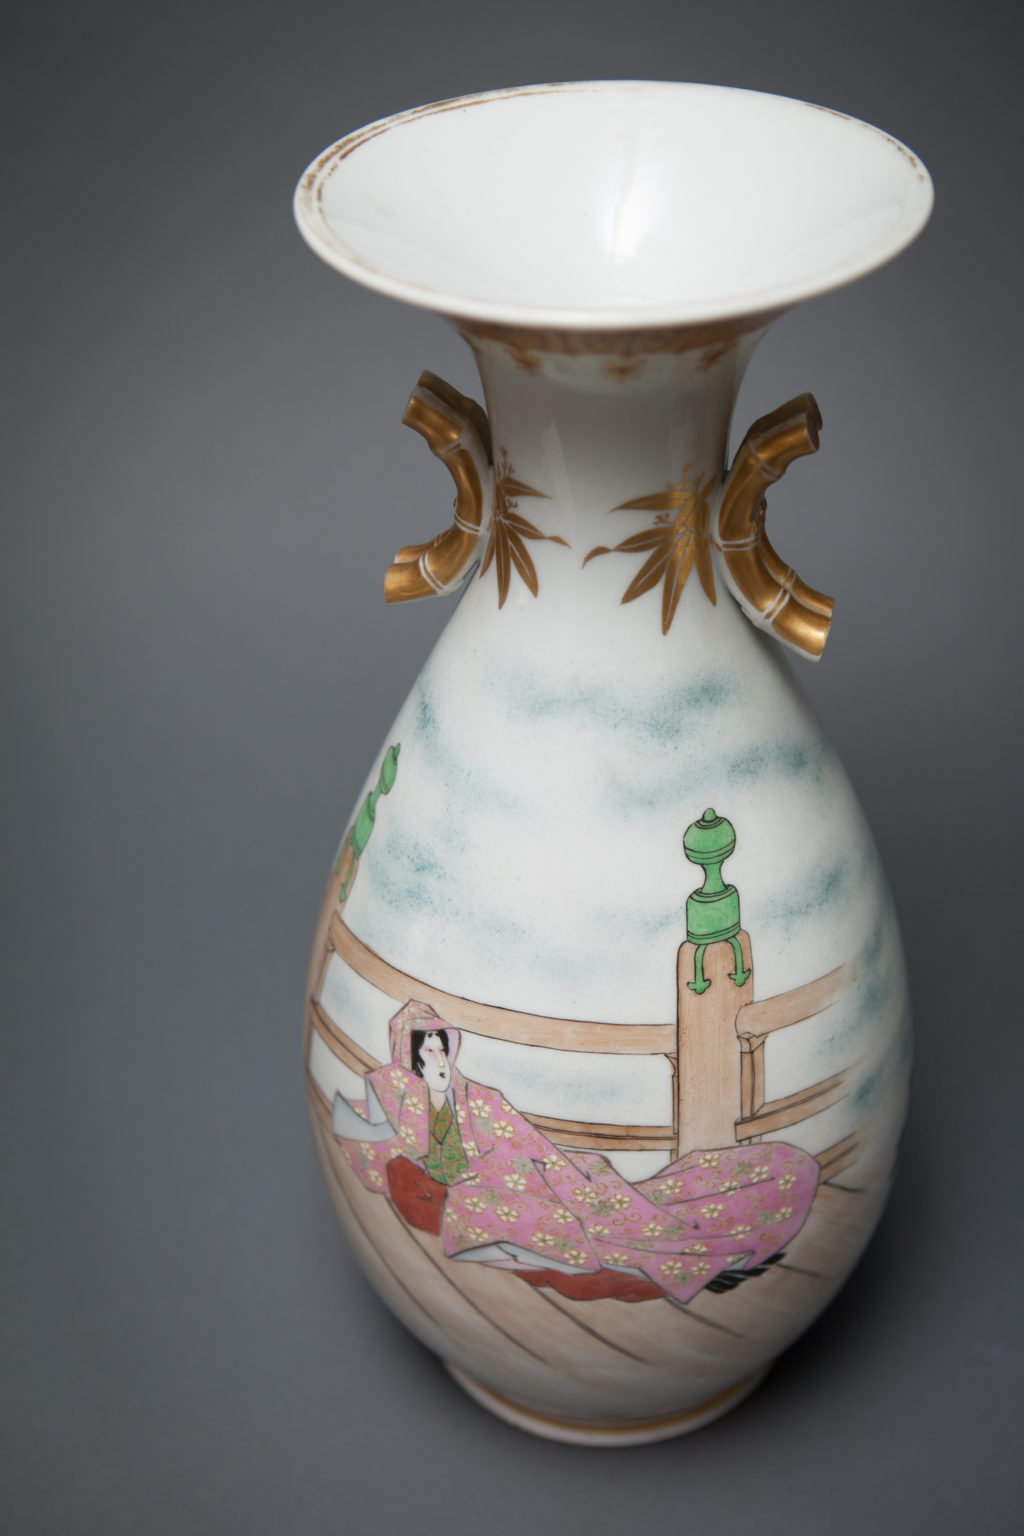 Pair of Kutani Vases, Showing Benkei and Yoshisune from Heikei Monogatari, Lady Murasaki on Reverse Side.